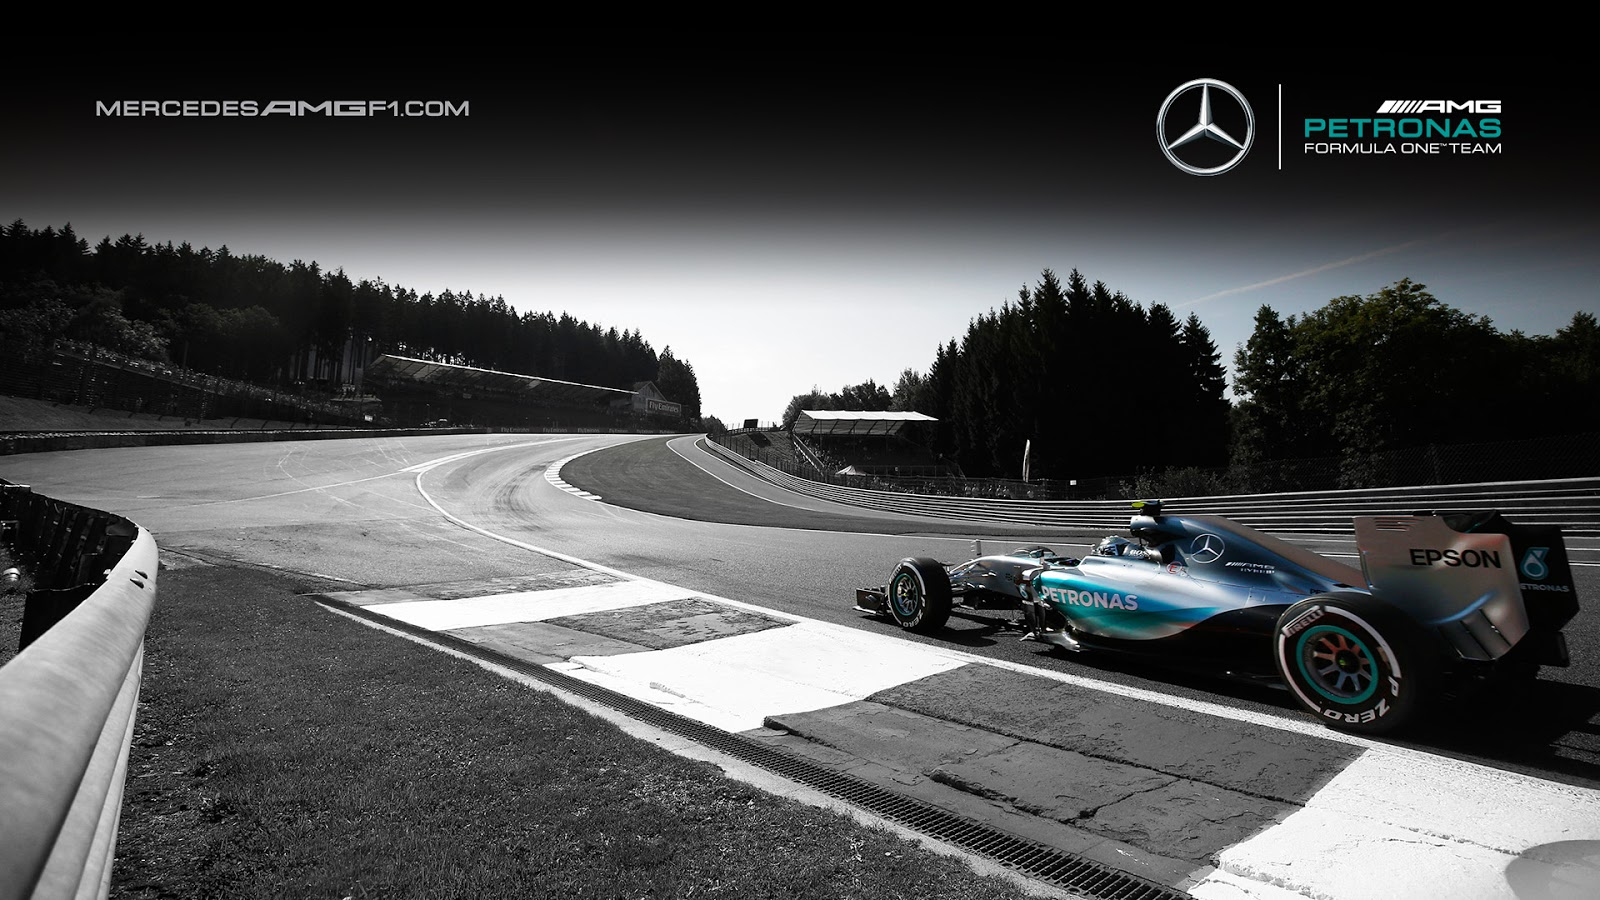 mercedes amg petronas w06 2015 f1 wallpaper kfzoom. Black Bedroom Furniture Sets. Home Design Ideas